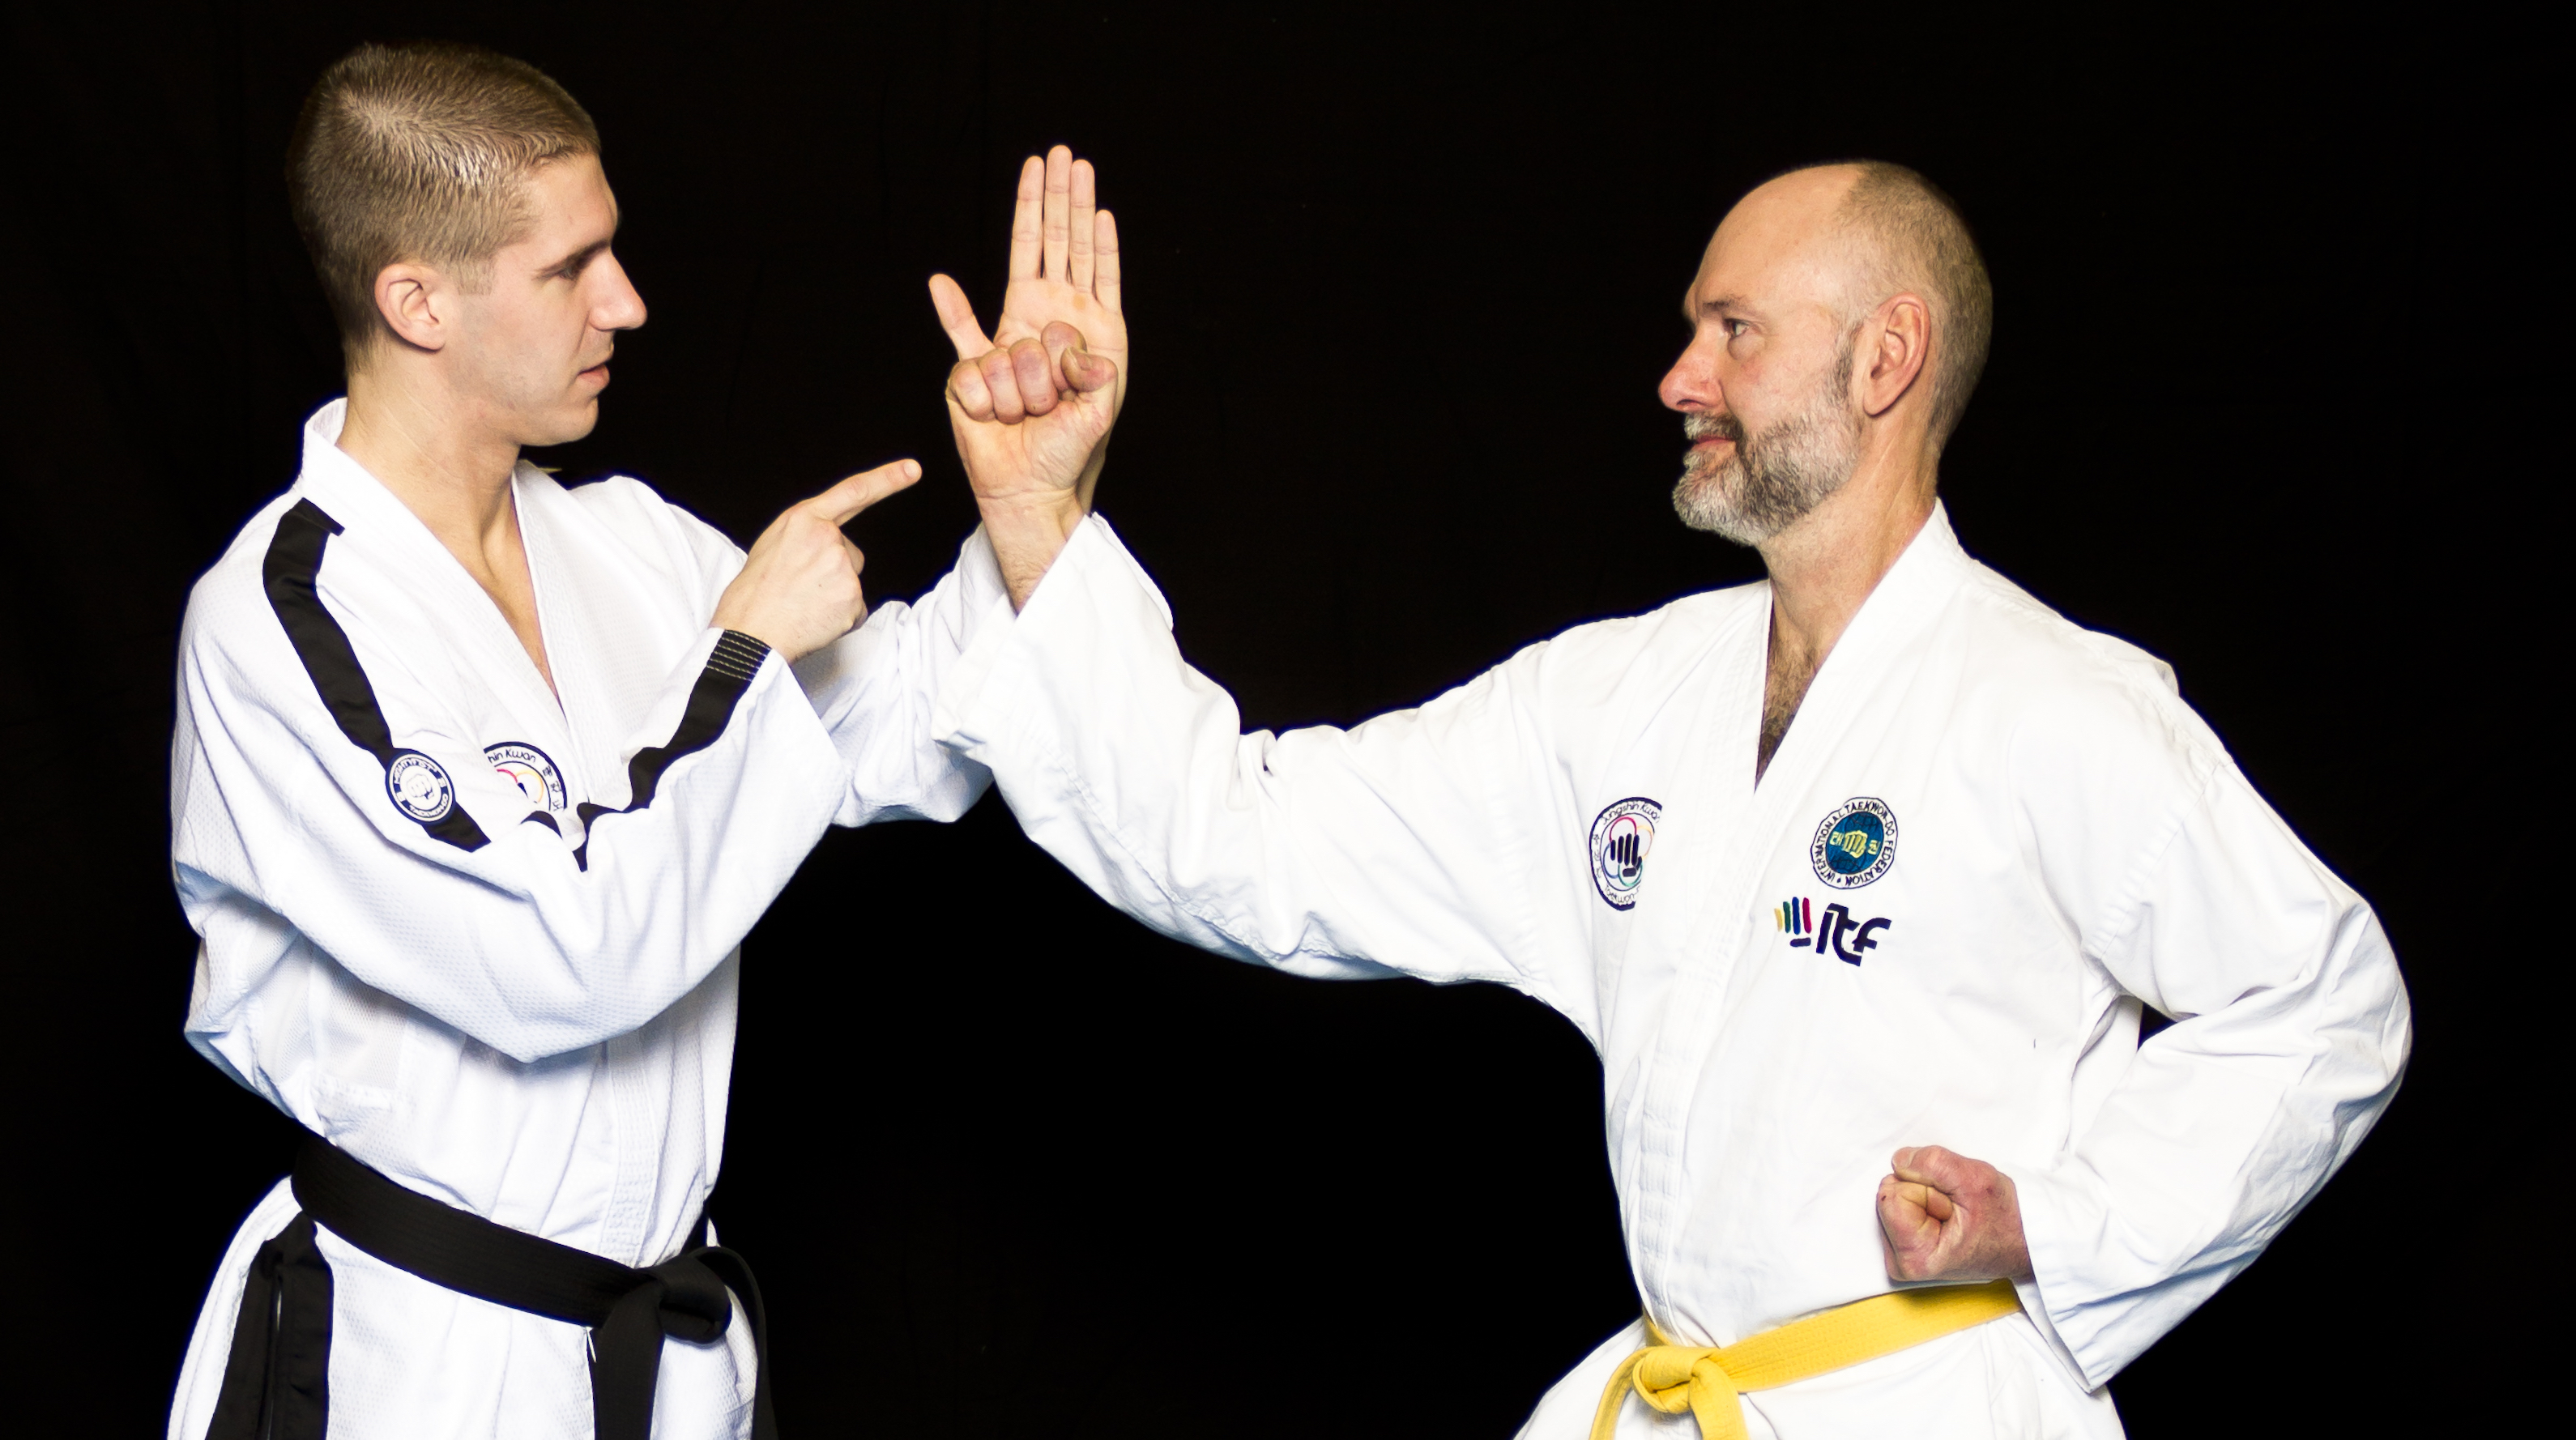 Personal Taekwon-Do Training